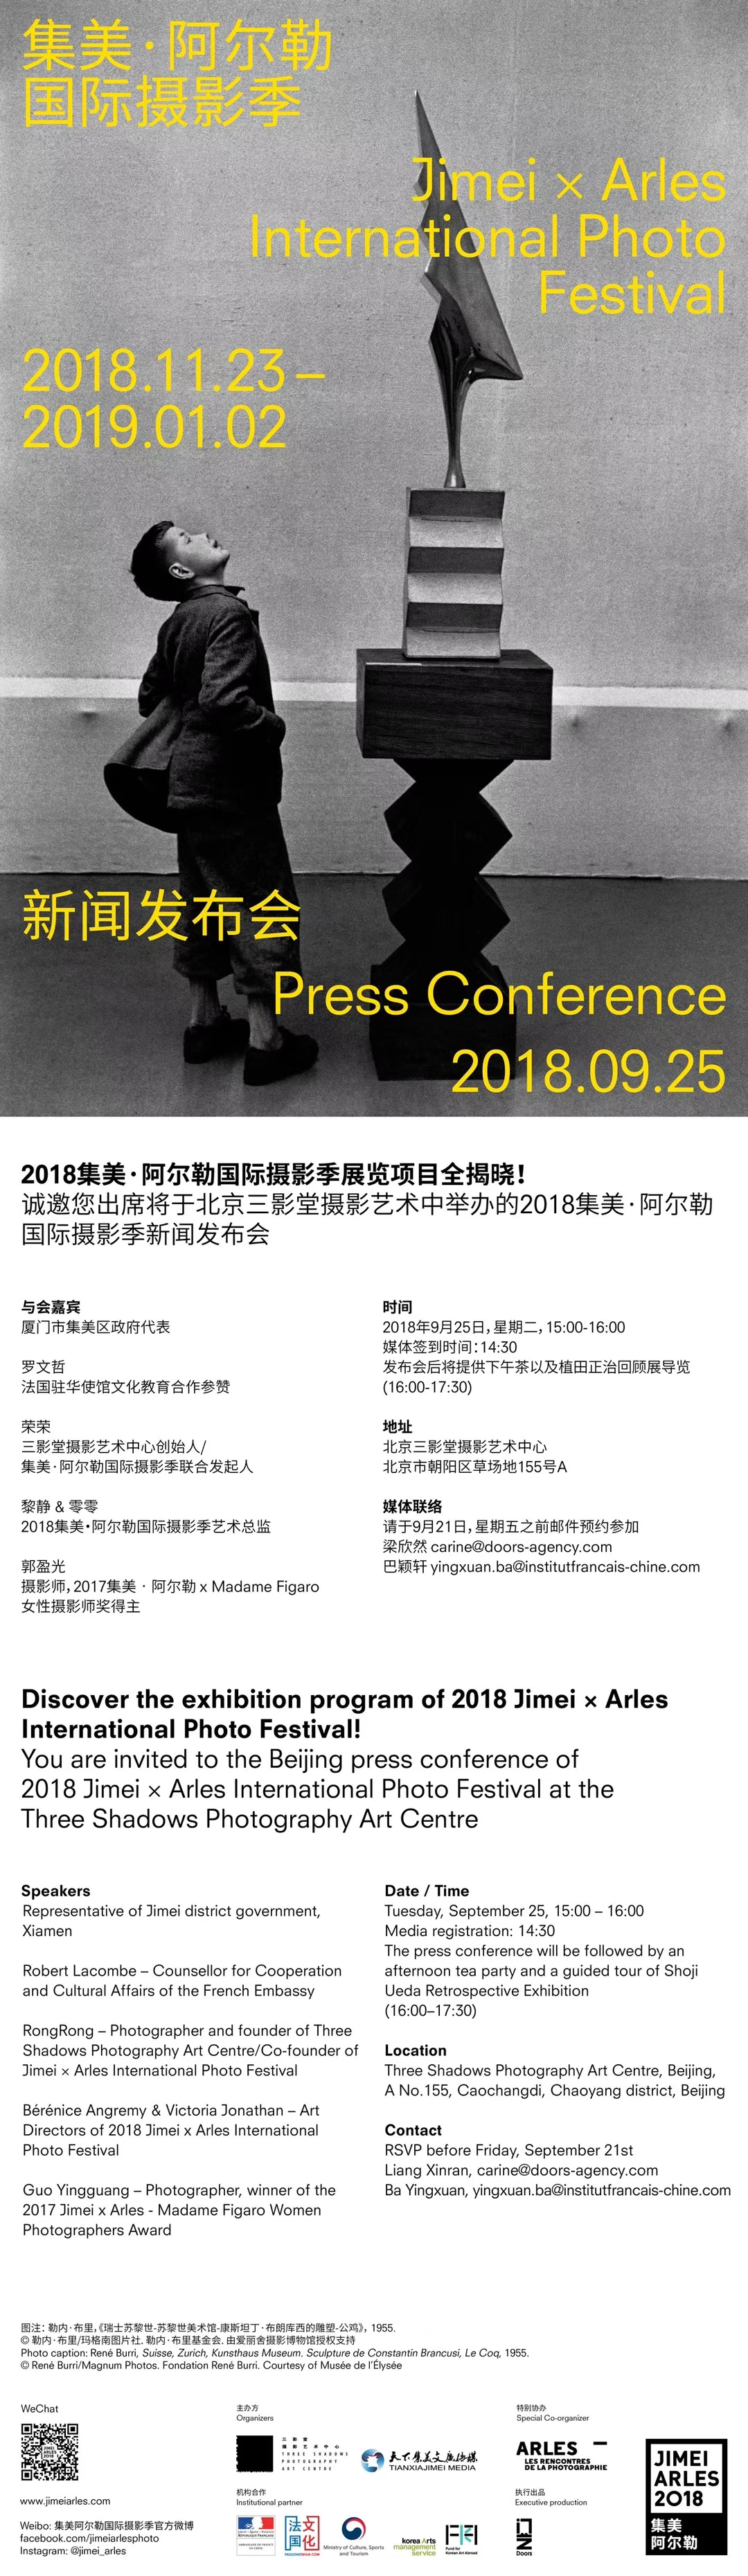 Save the Date for Jimei x Arles press conference-25 Septembre-Three Shadows.jpg